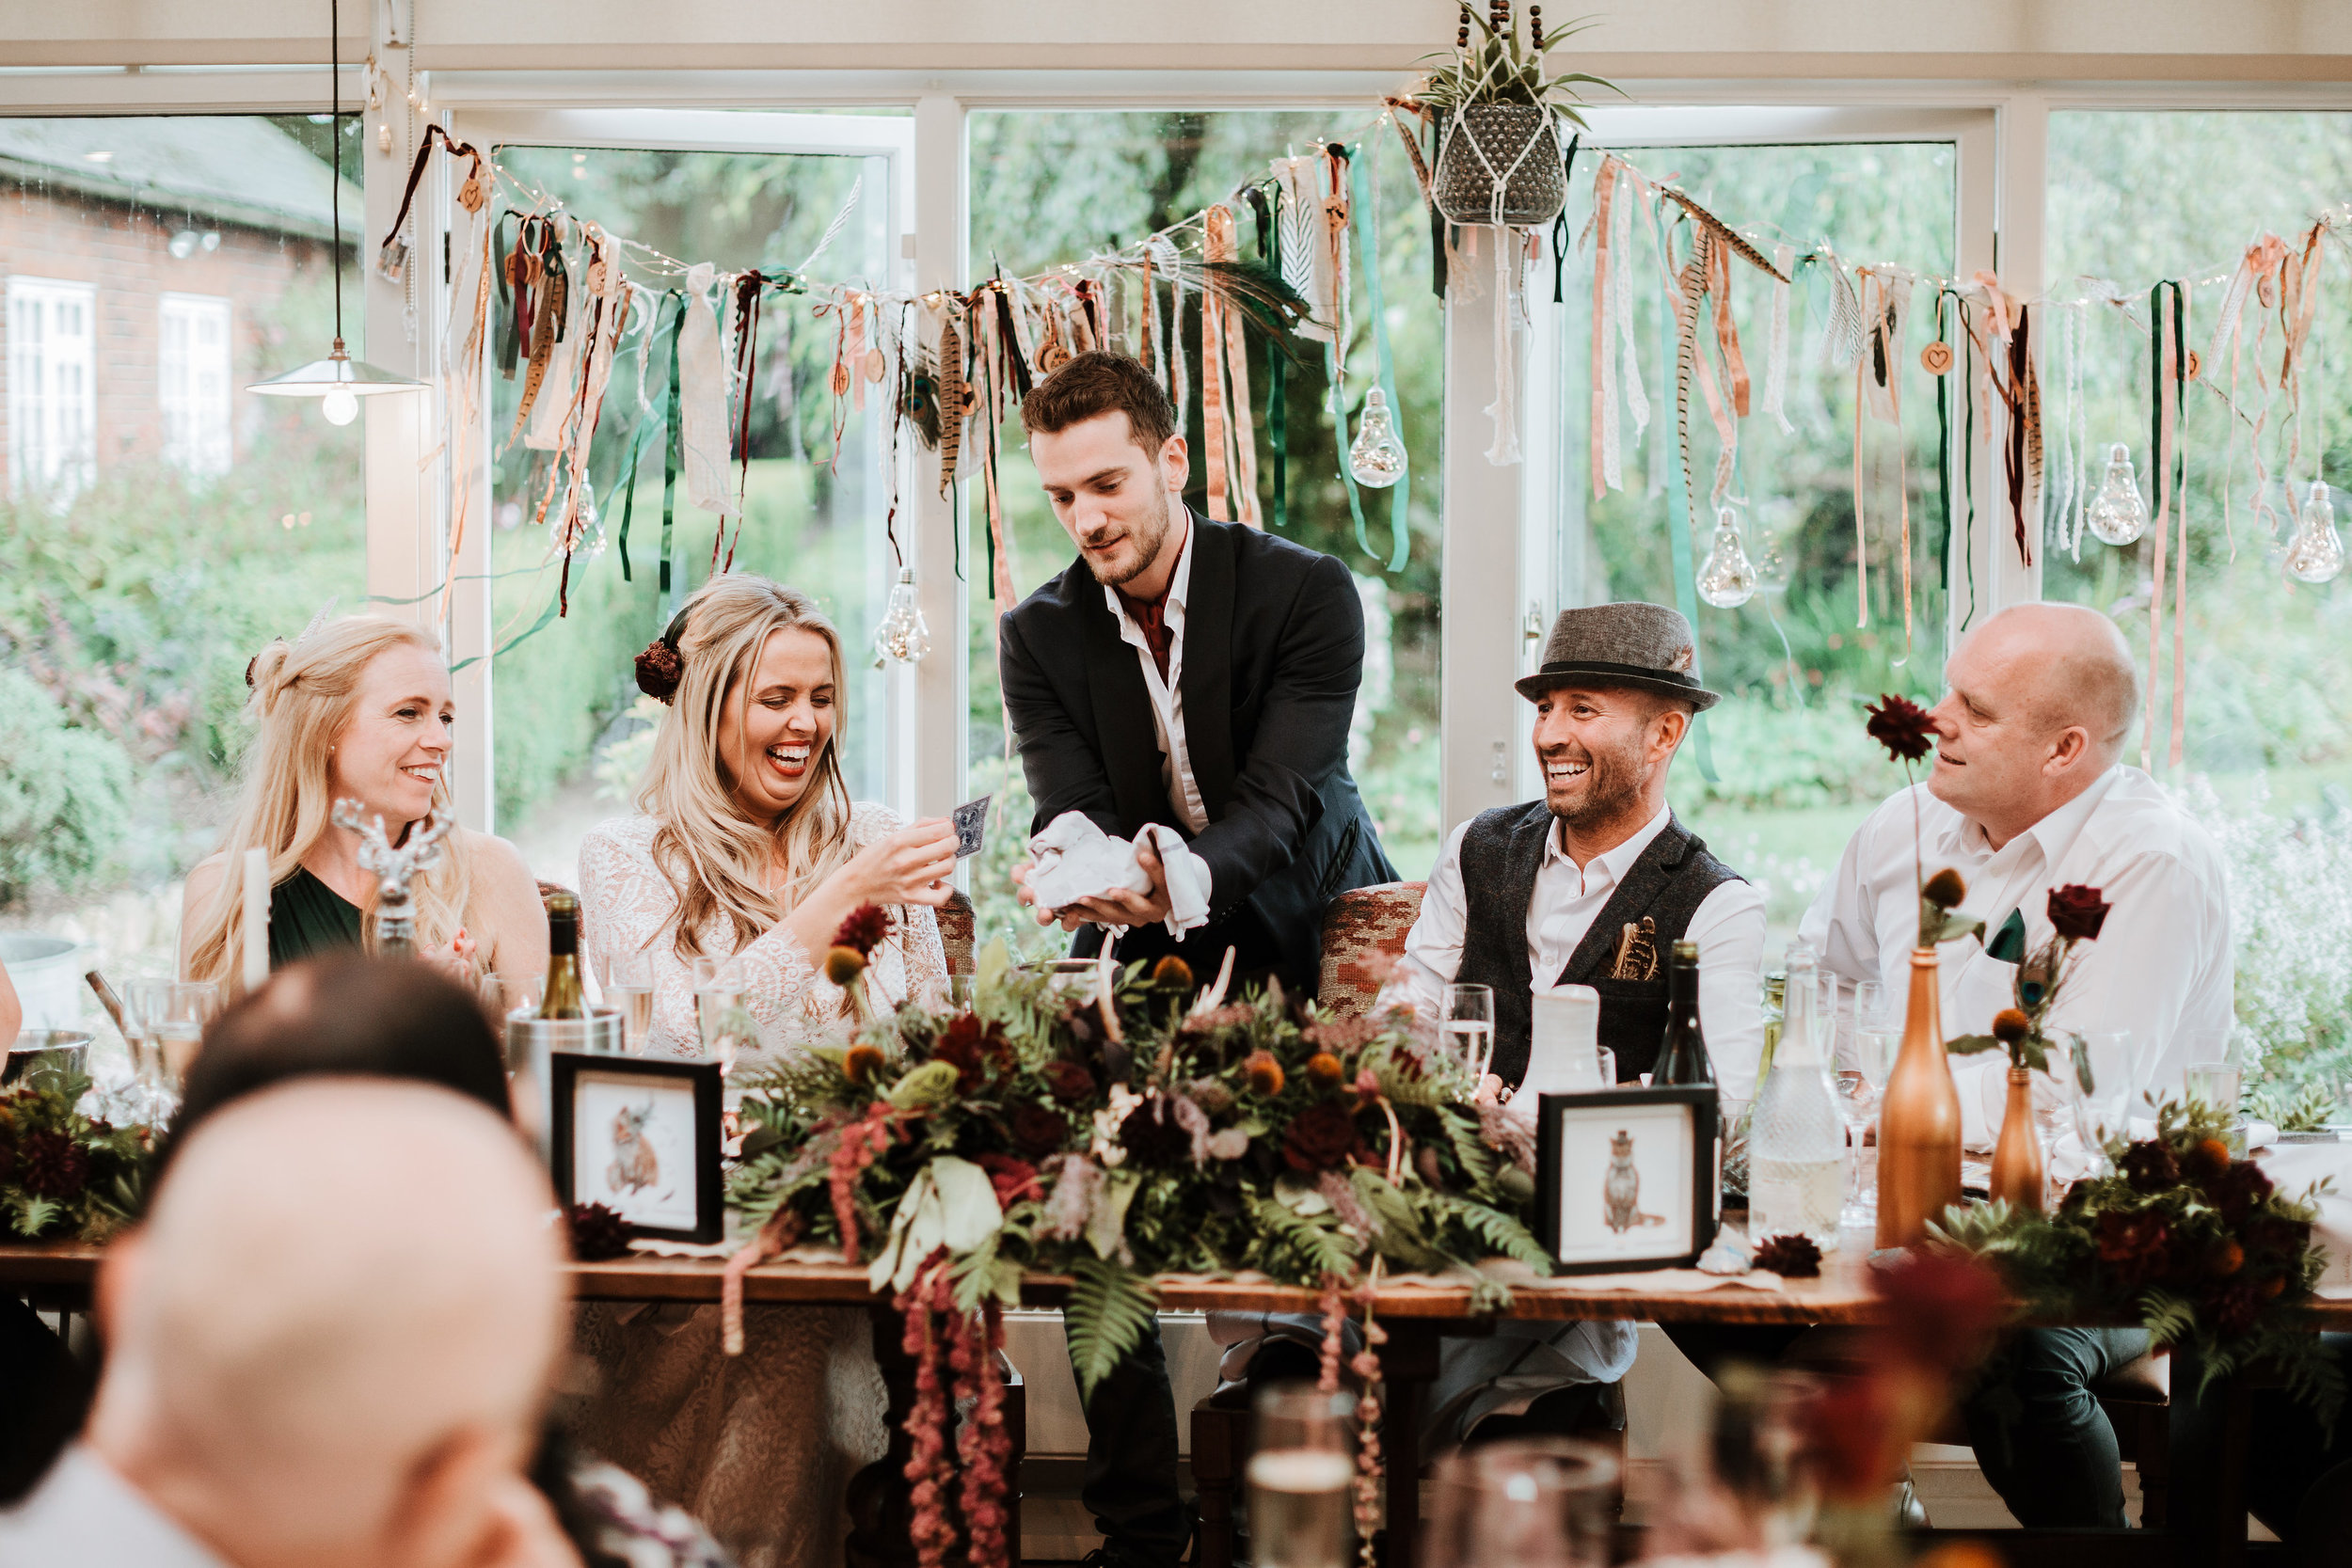 DAPPER DINING - Delightful Dinner Entertainment.Encourage interesting conversation and interaction with a hint of elegence and sophistication.